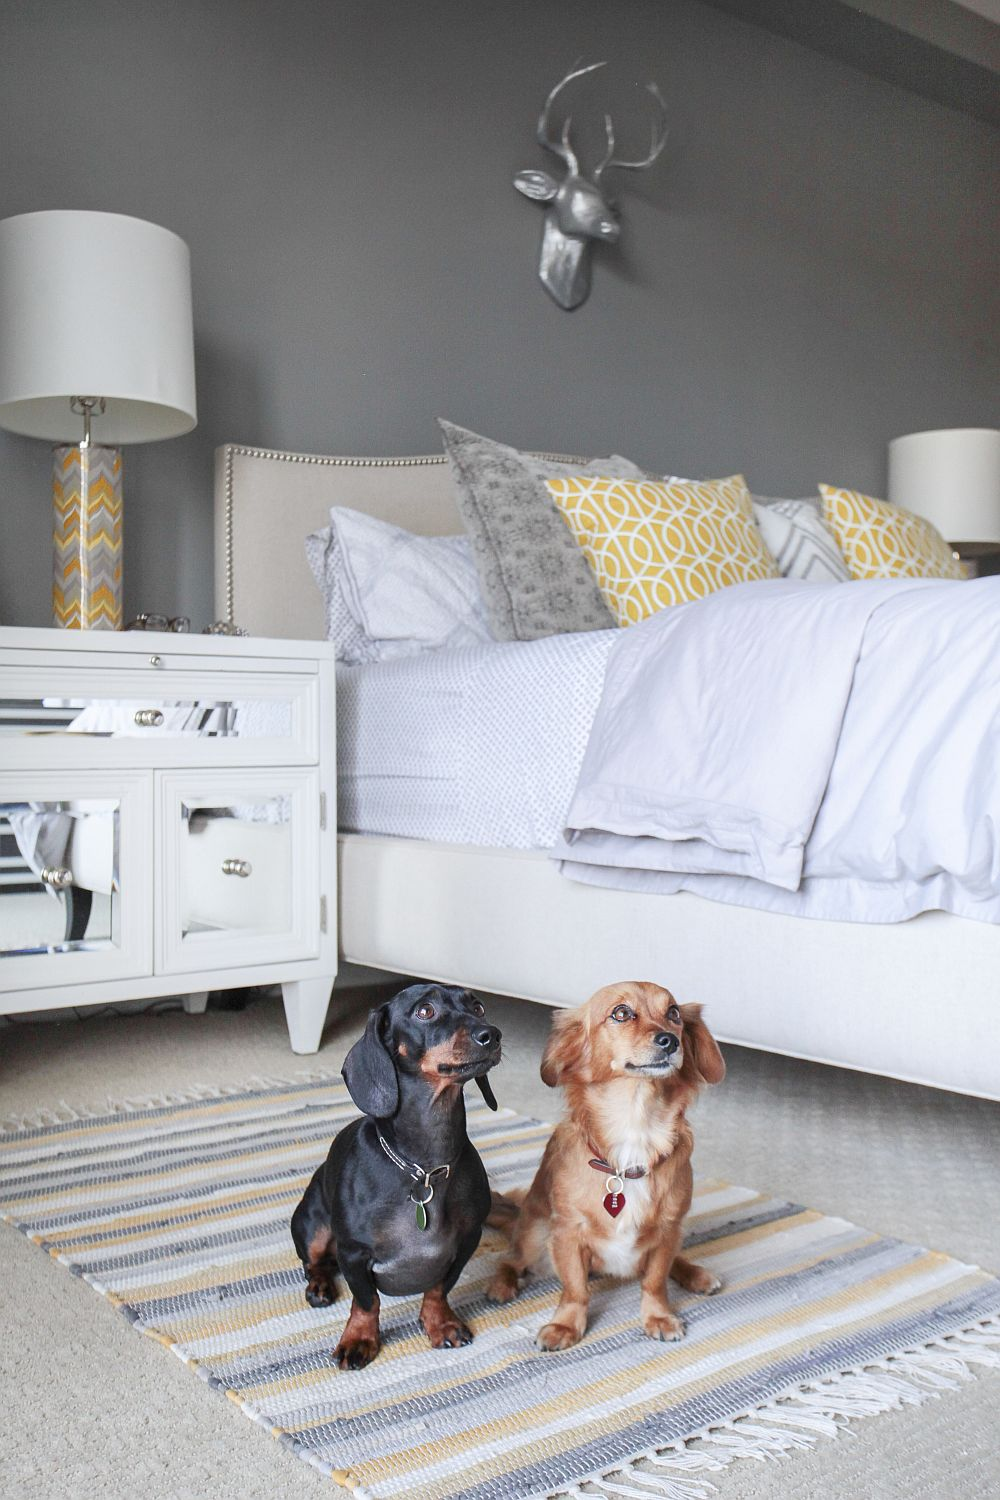 Mirrored bedroom table adds chic style to the space